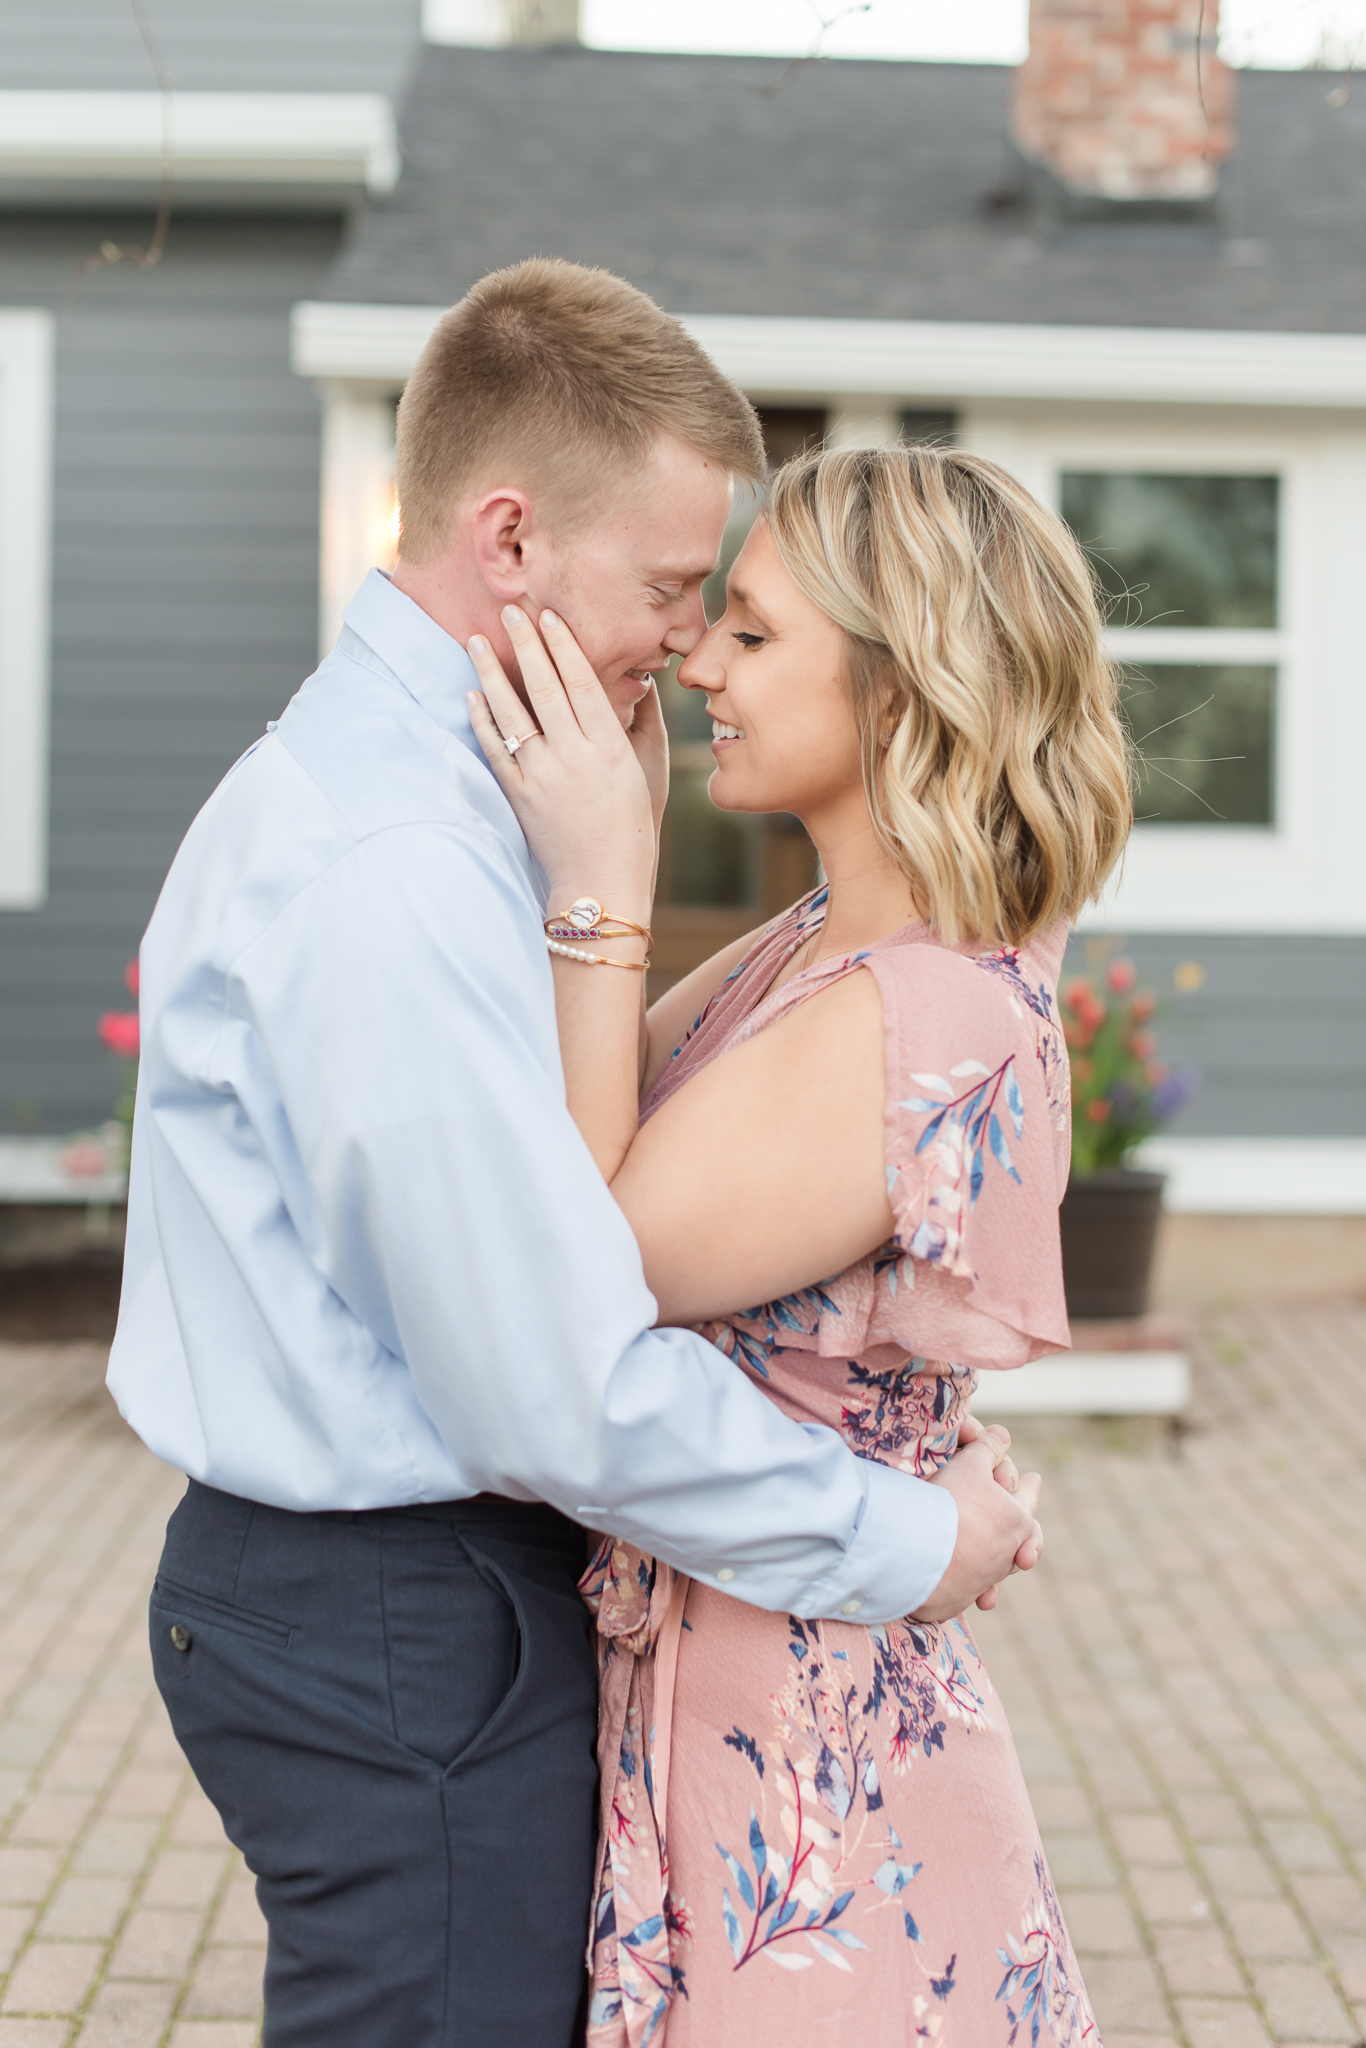 Richie Woods Nature Preserve and Mustard Seed Gardens Engagement Session Wedding Photos-49.jpg